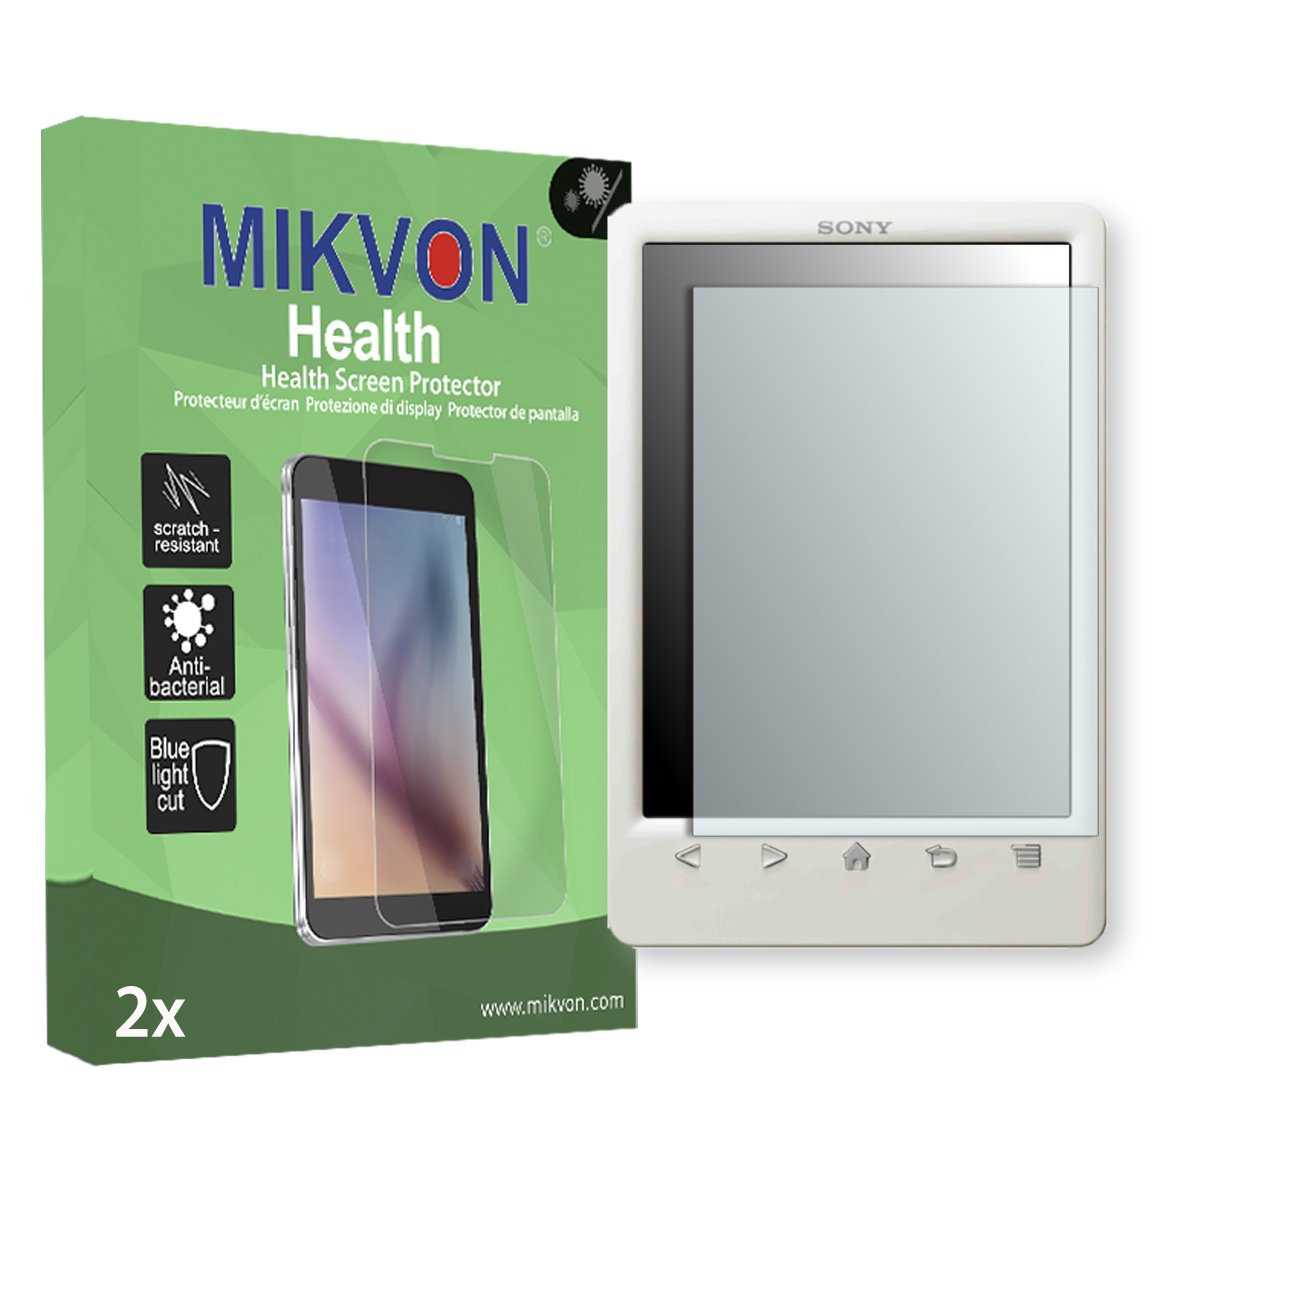 2X Mikvon Health Screen Protector for Sony PRS-T3 Antibacterial BlueLightCut Foil - Retail Package with Accessories MH197480